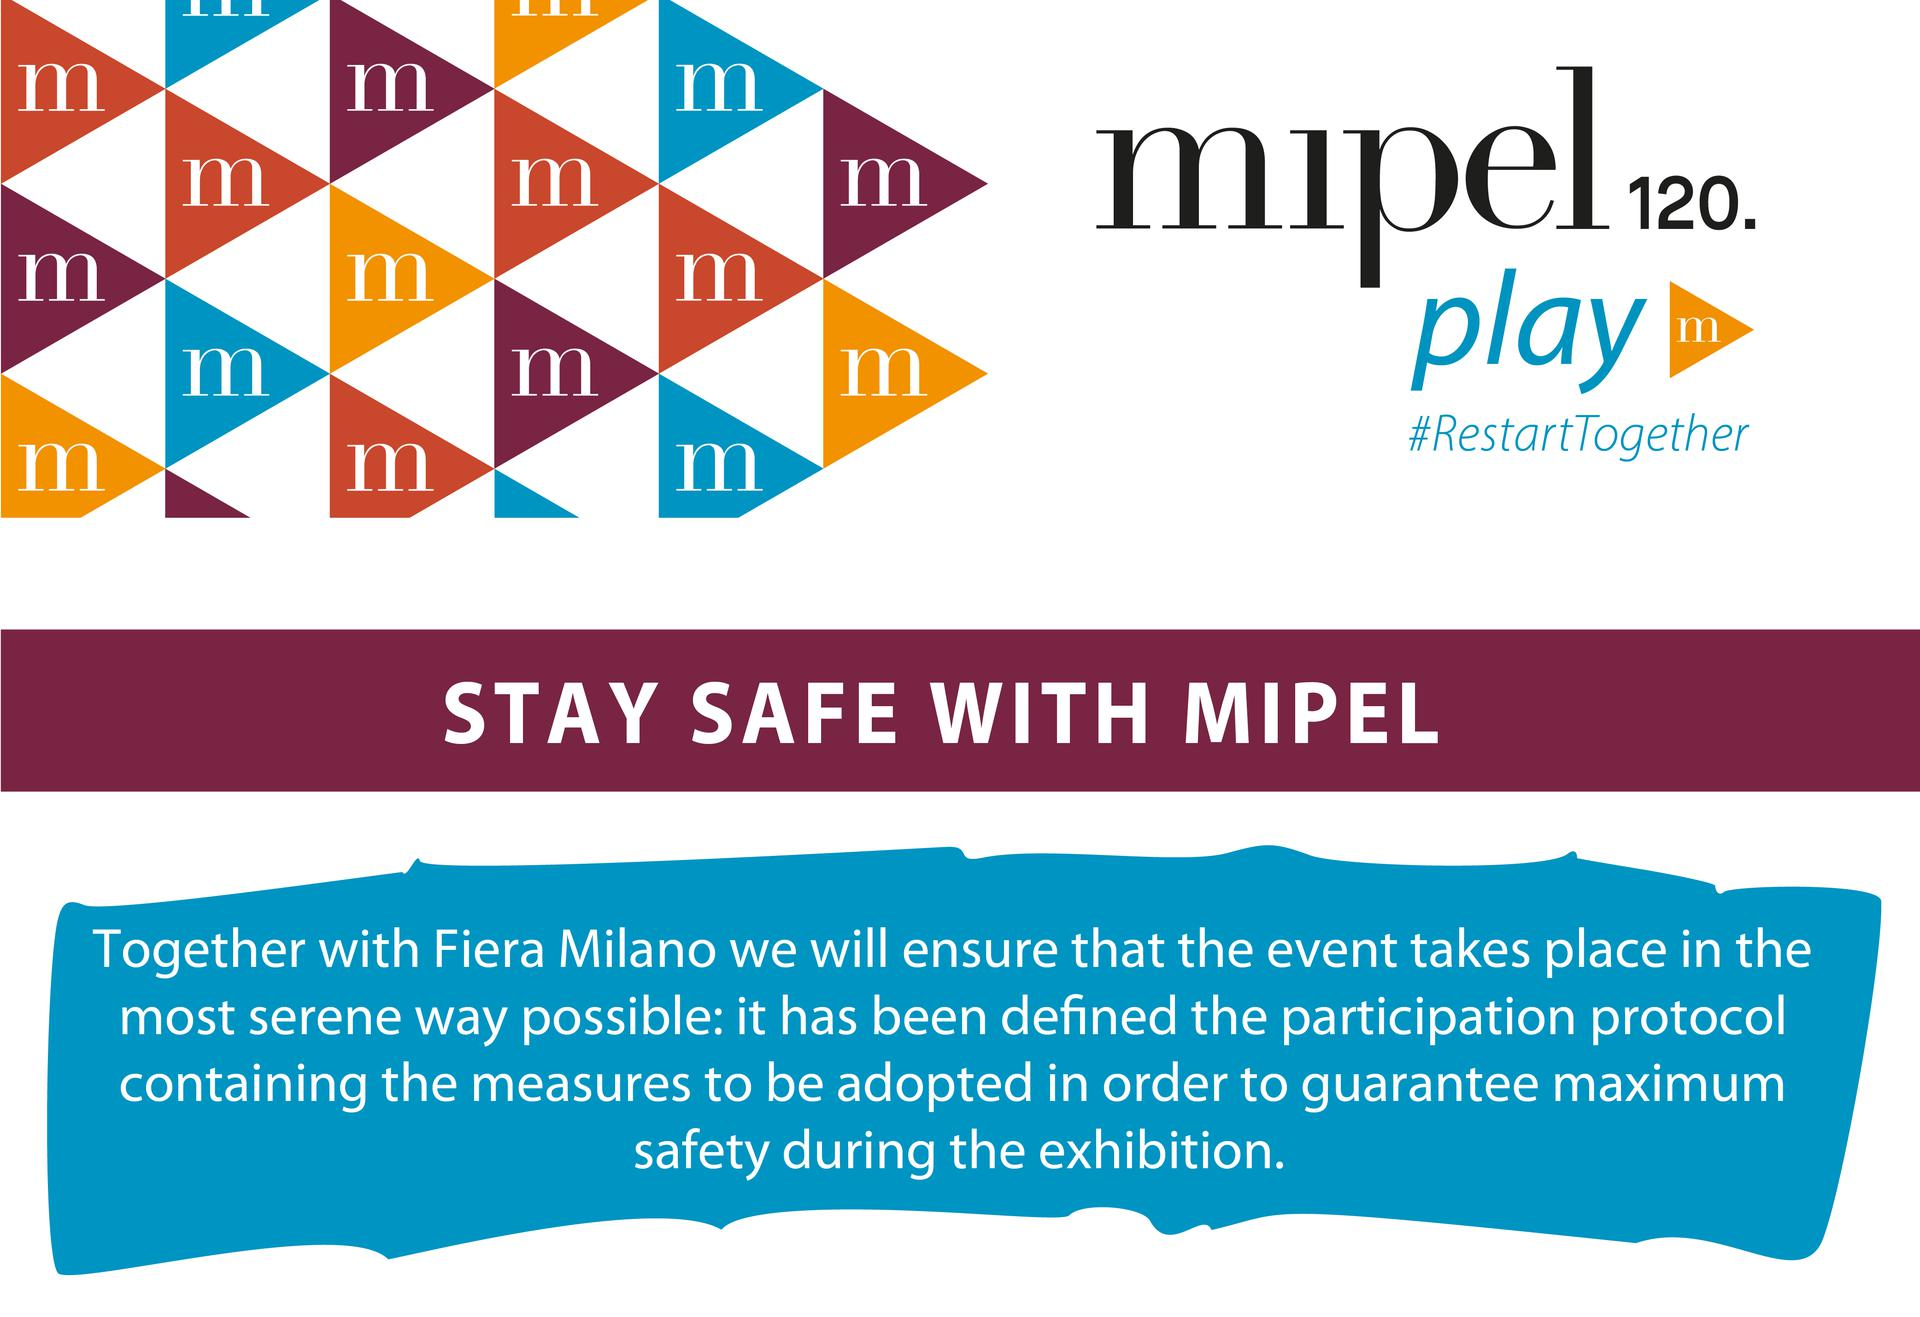 STAY SAFE WITH MIPEL: visit MIPEL120 safely - 19/21 SEPTEMBER 2021, FIERAMILANO-RHO   SS 2022 COLLECTIONS